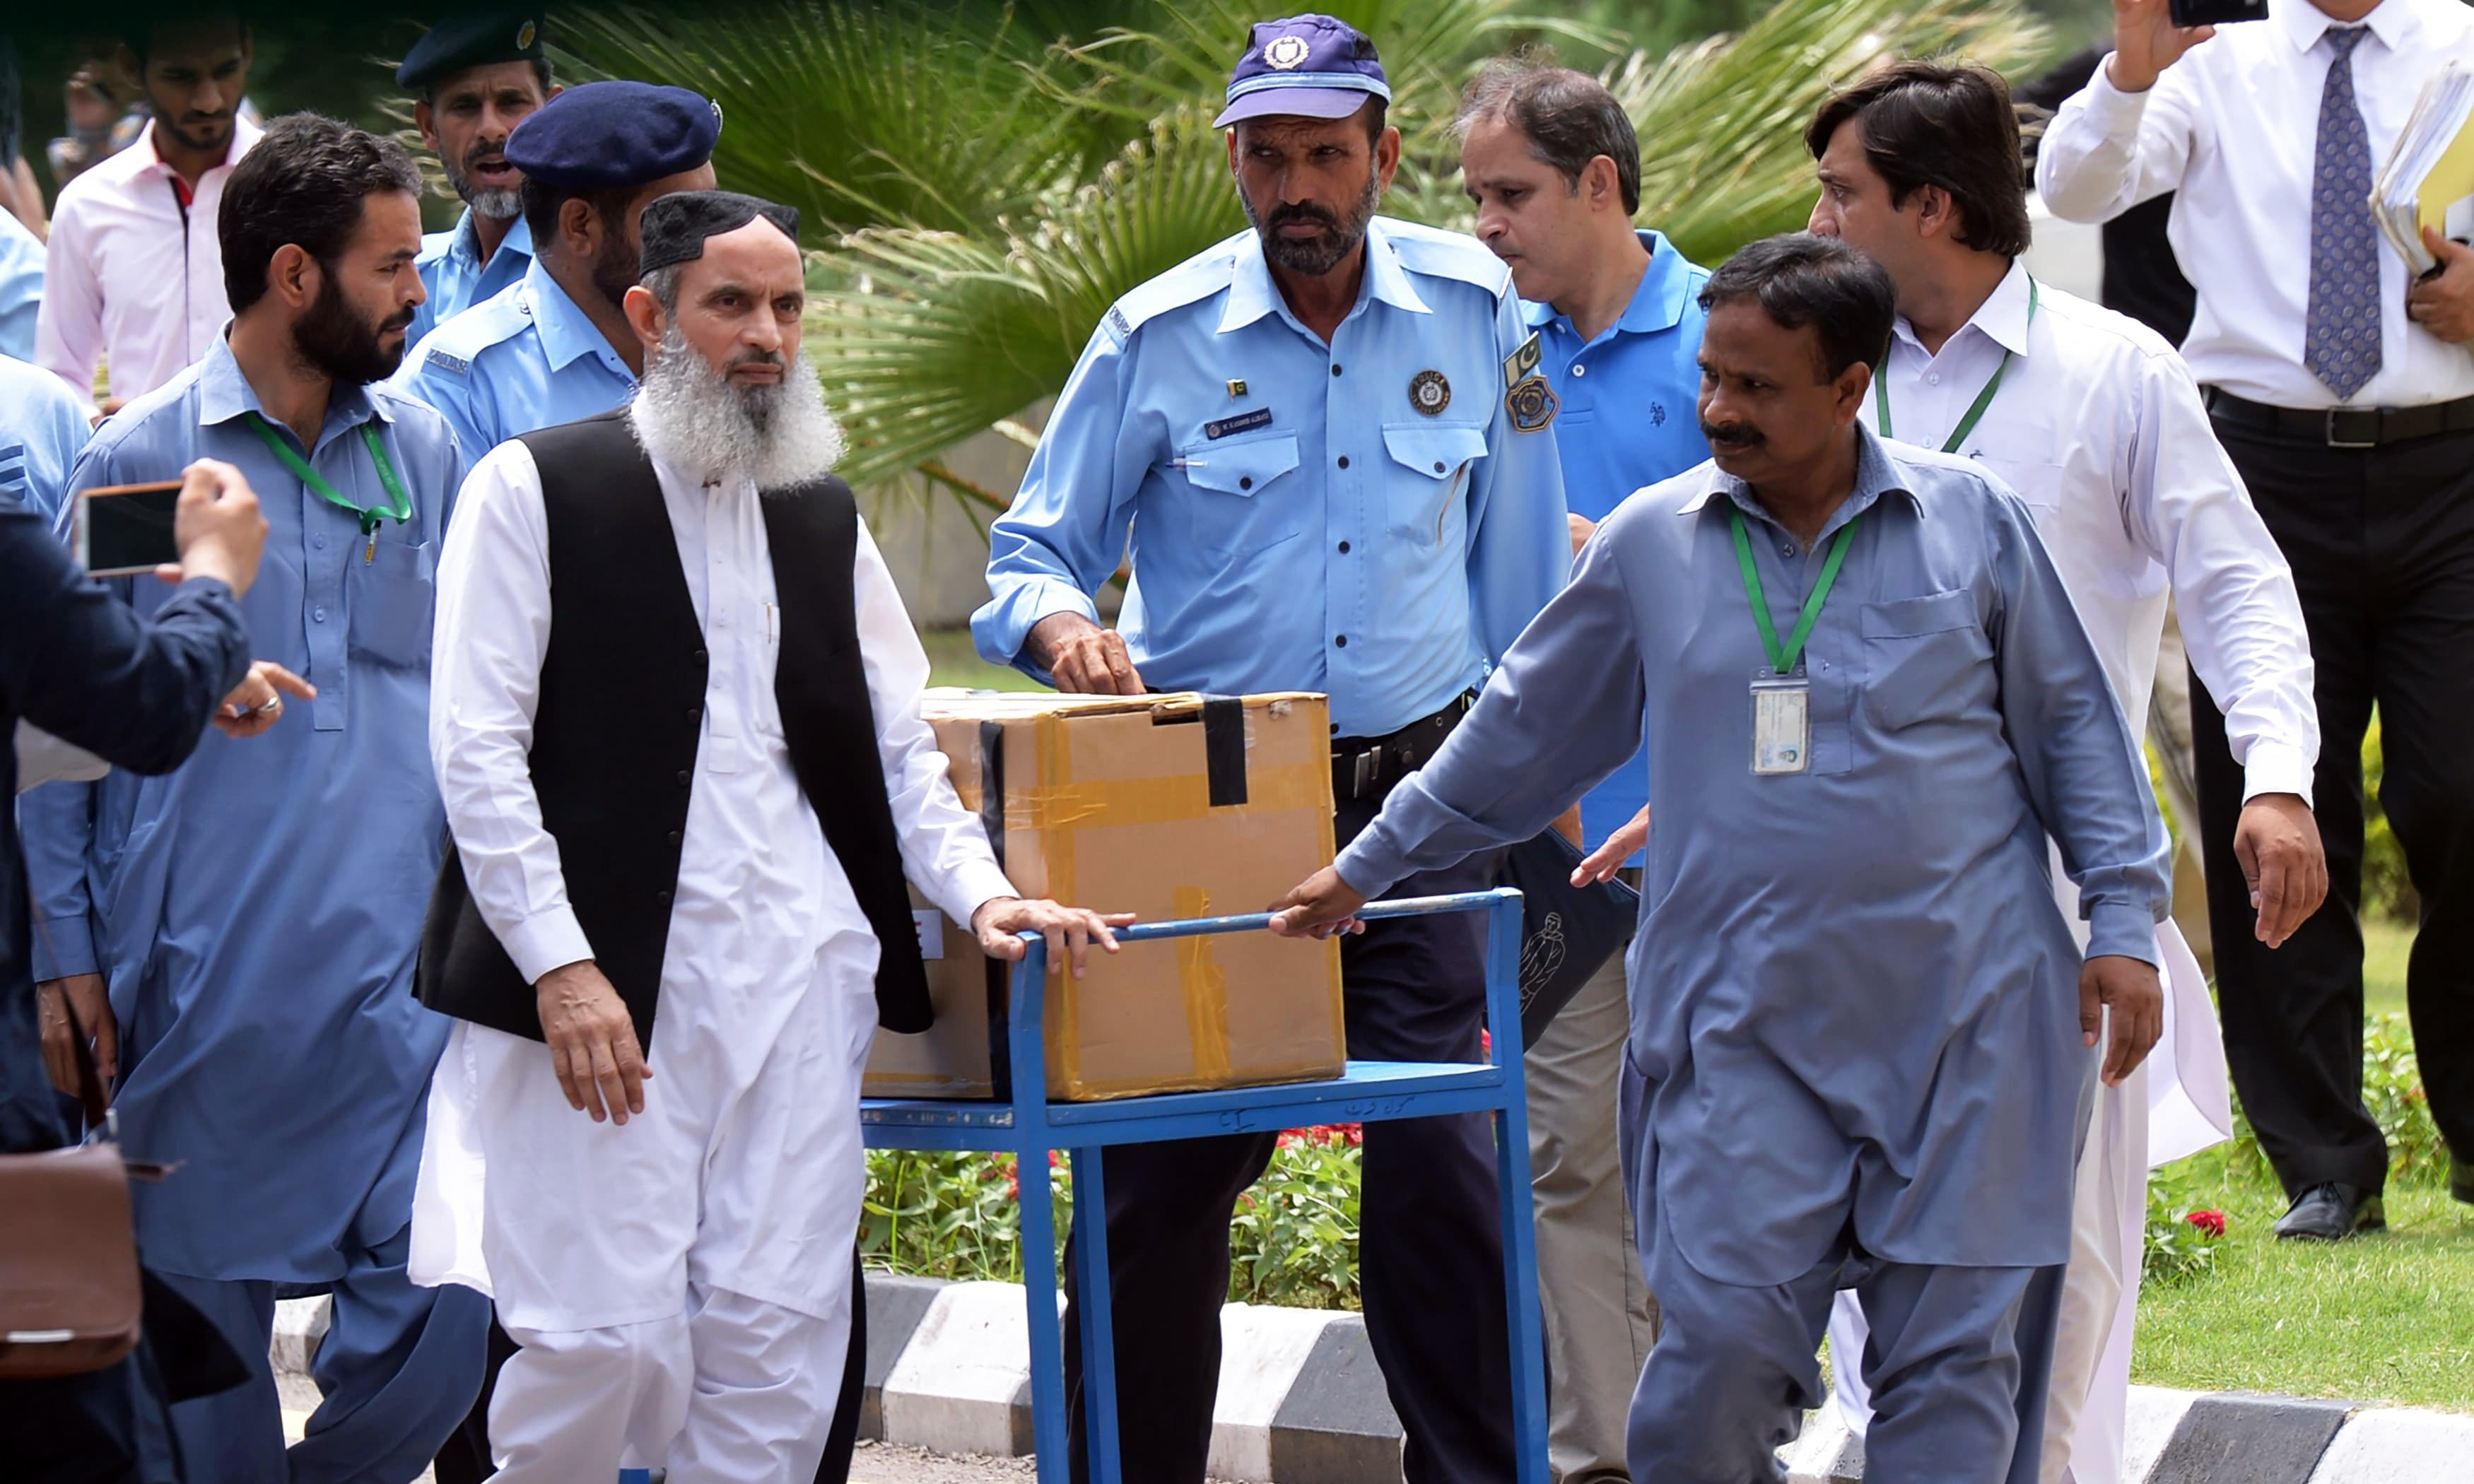 Officials transport a box of final evidence presented by the JIT. —AFP